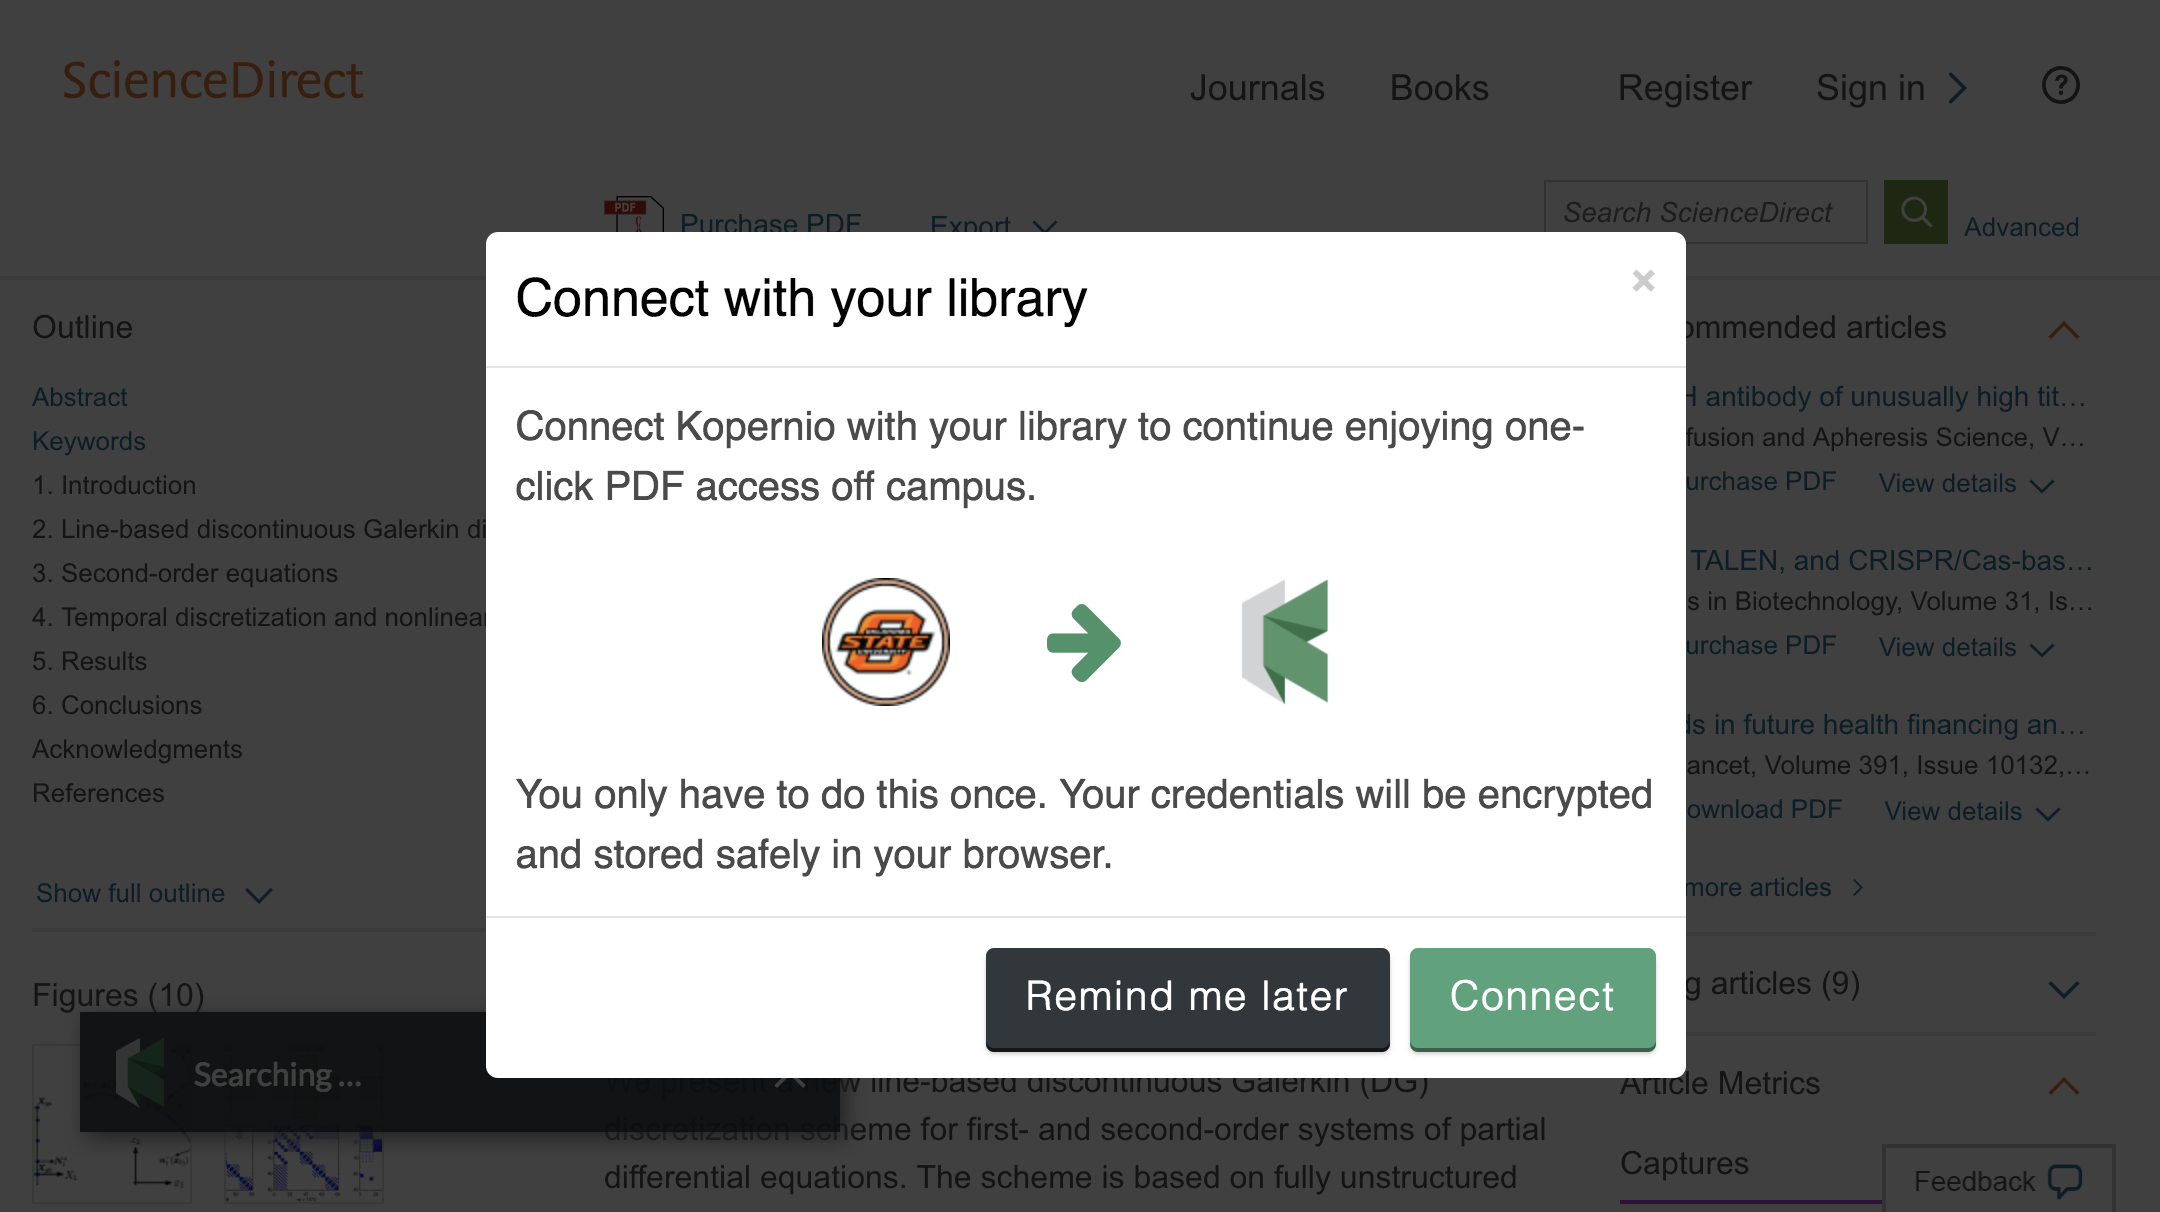 Connect to library prompt for off-campus access to Oklahoma State University at Tulsa e-resources.